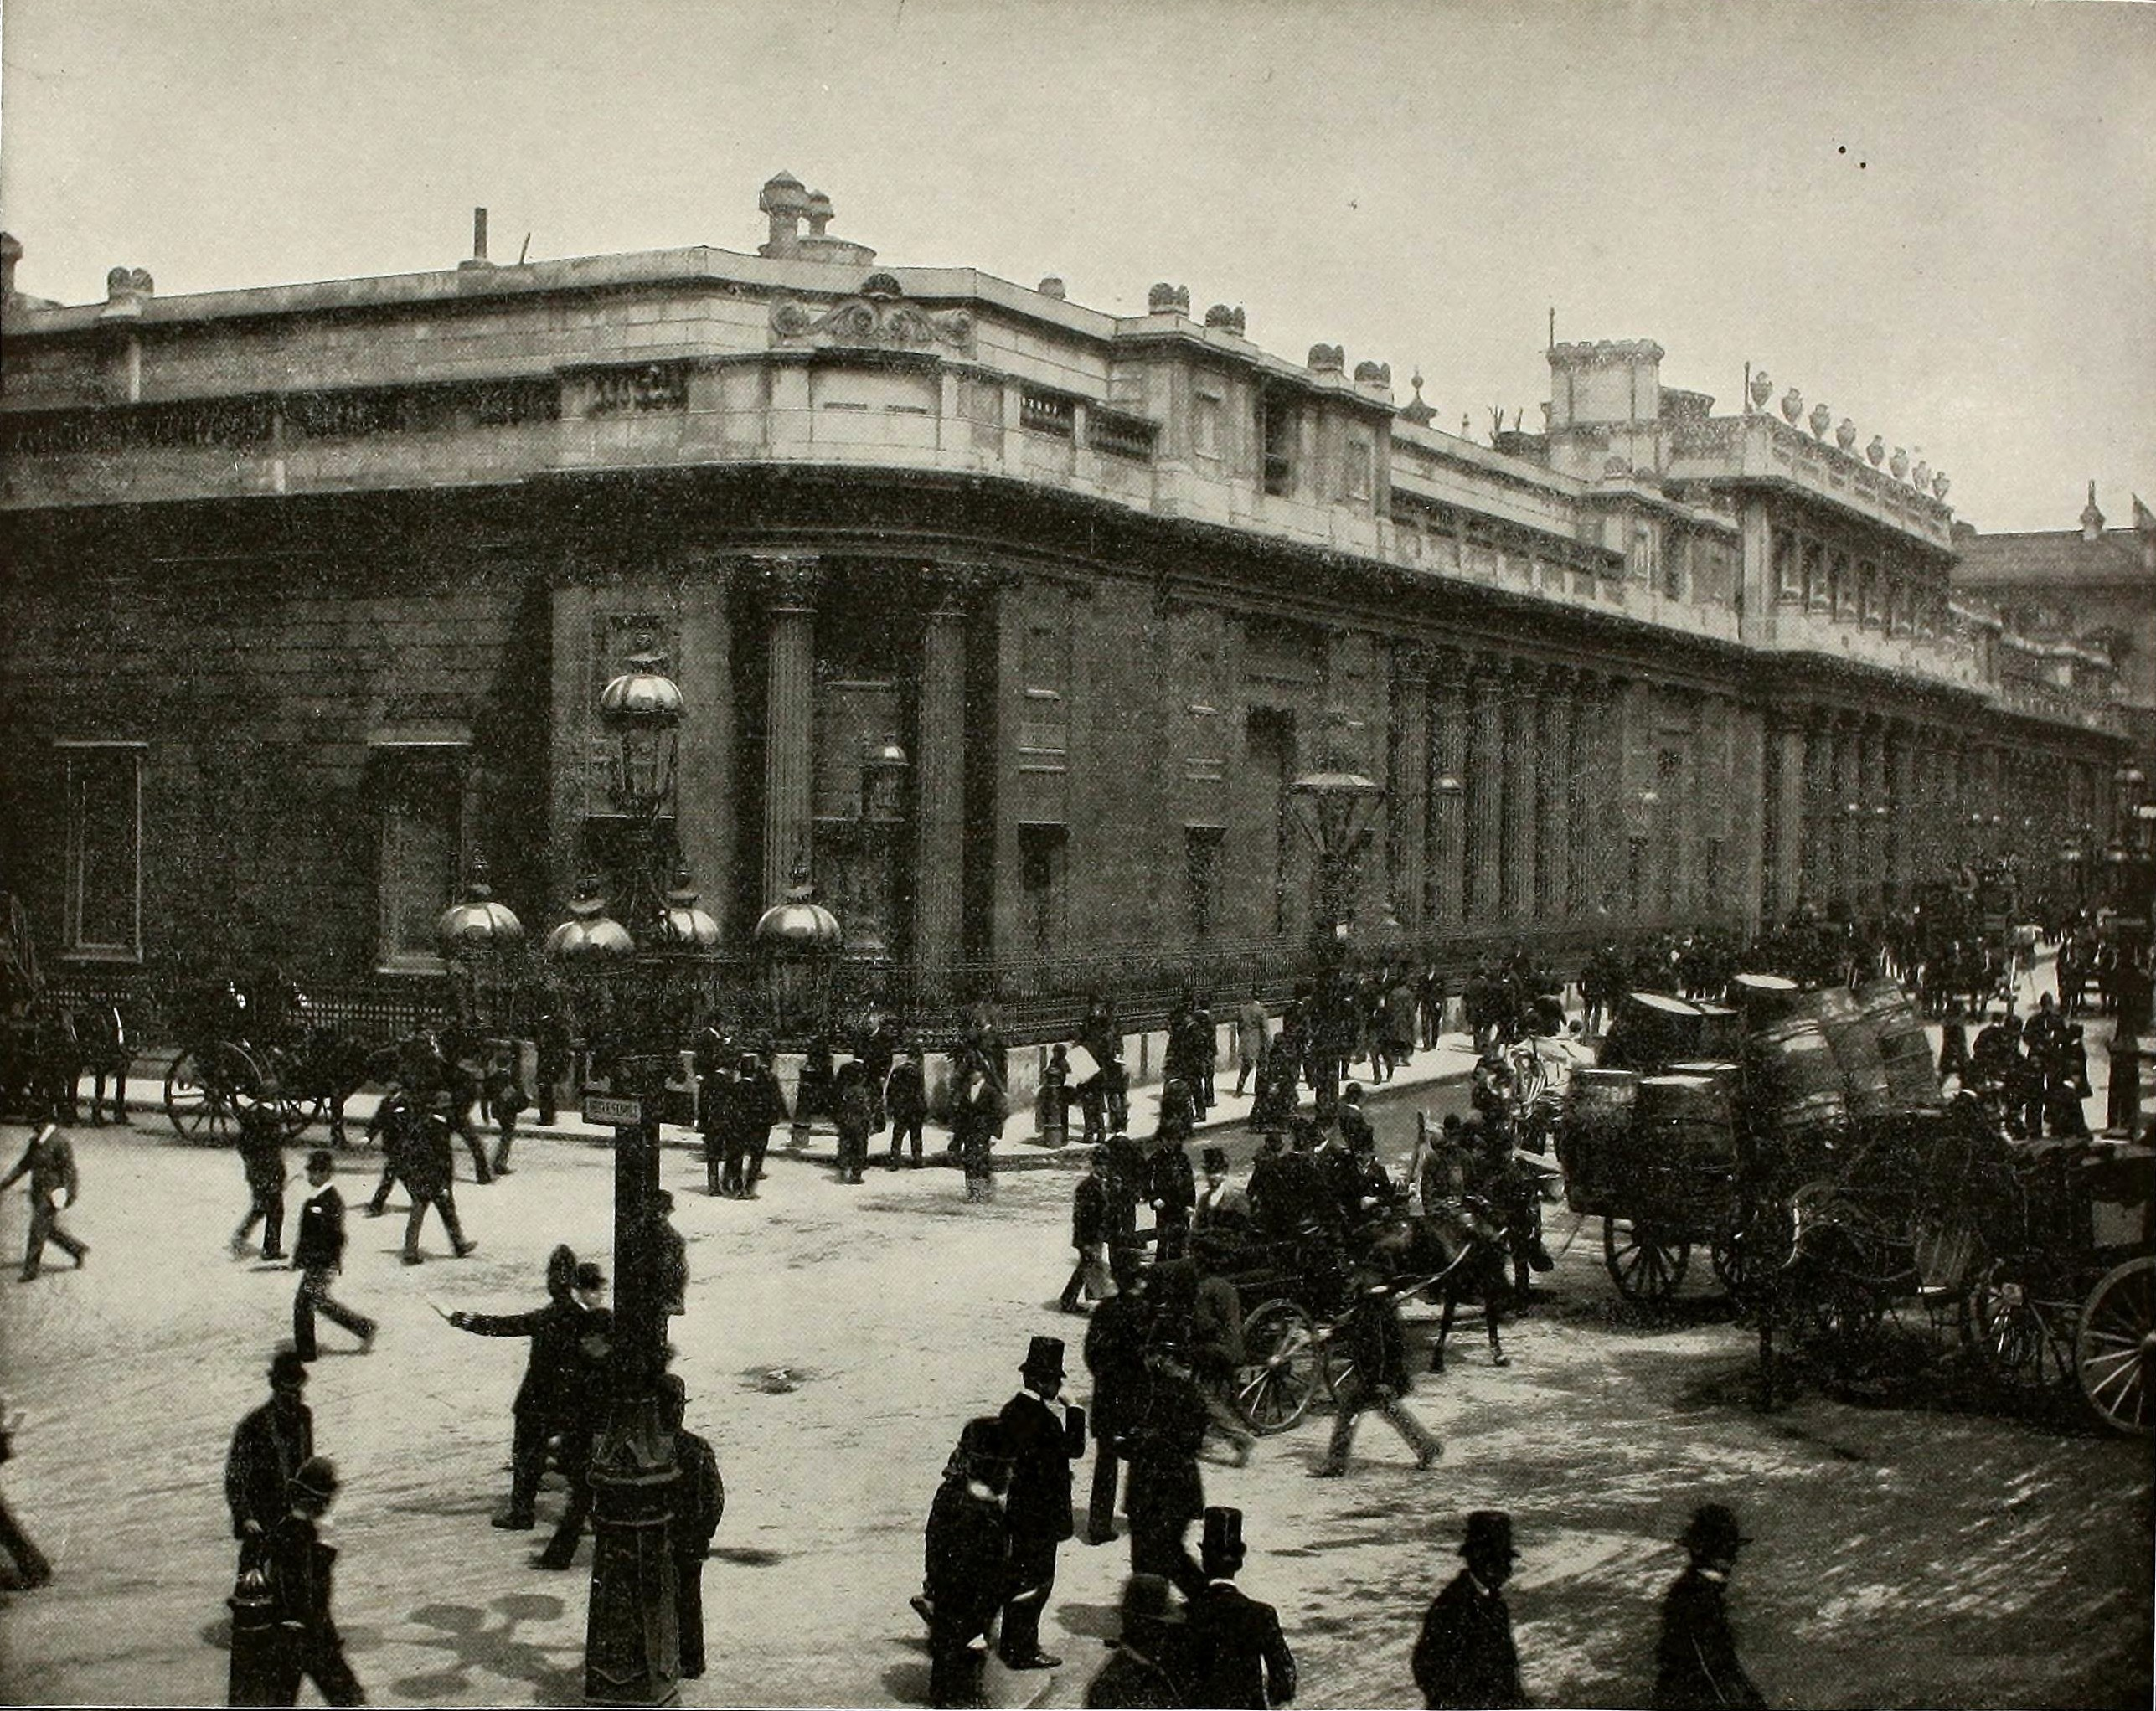 Bank of England London about 1892